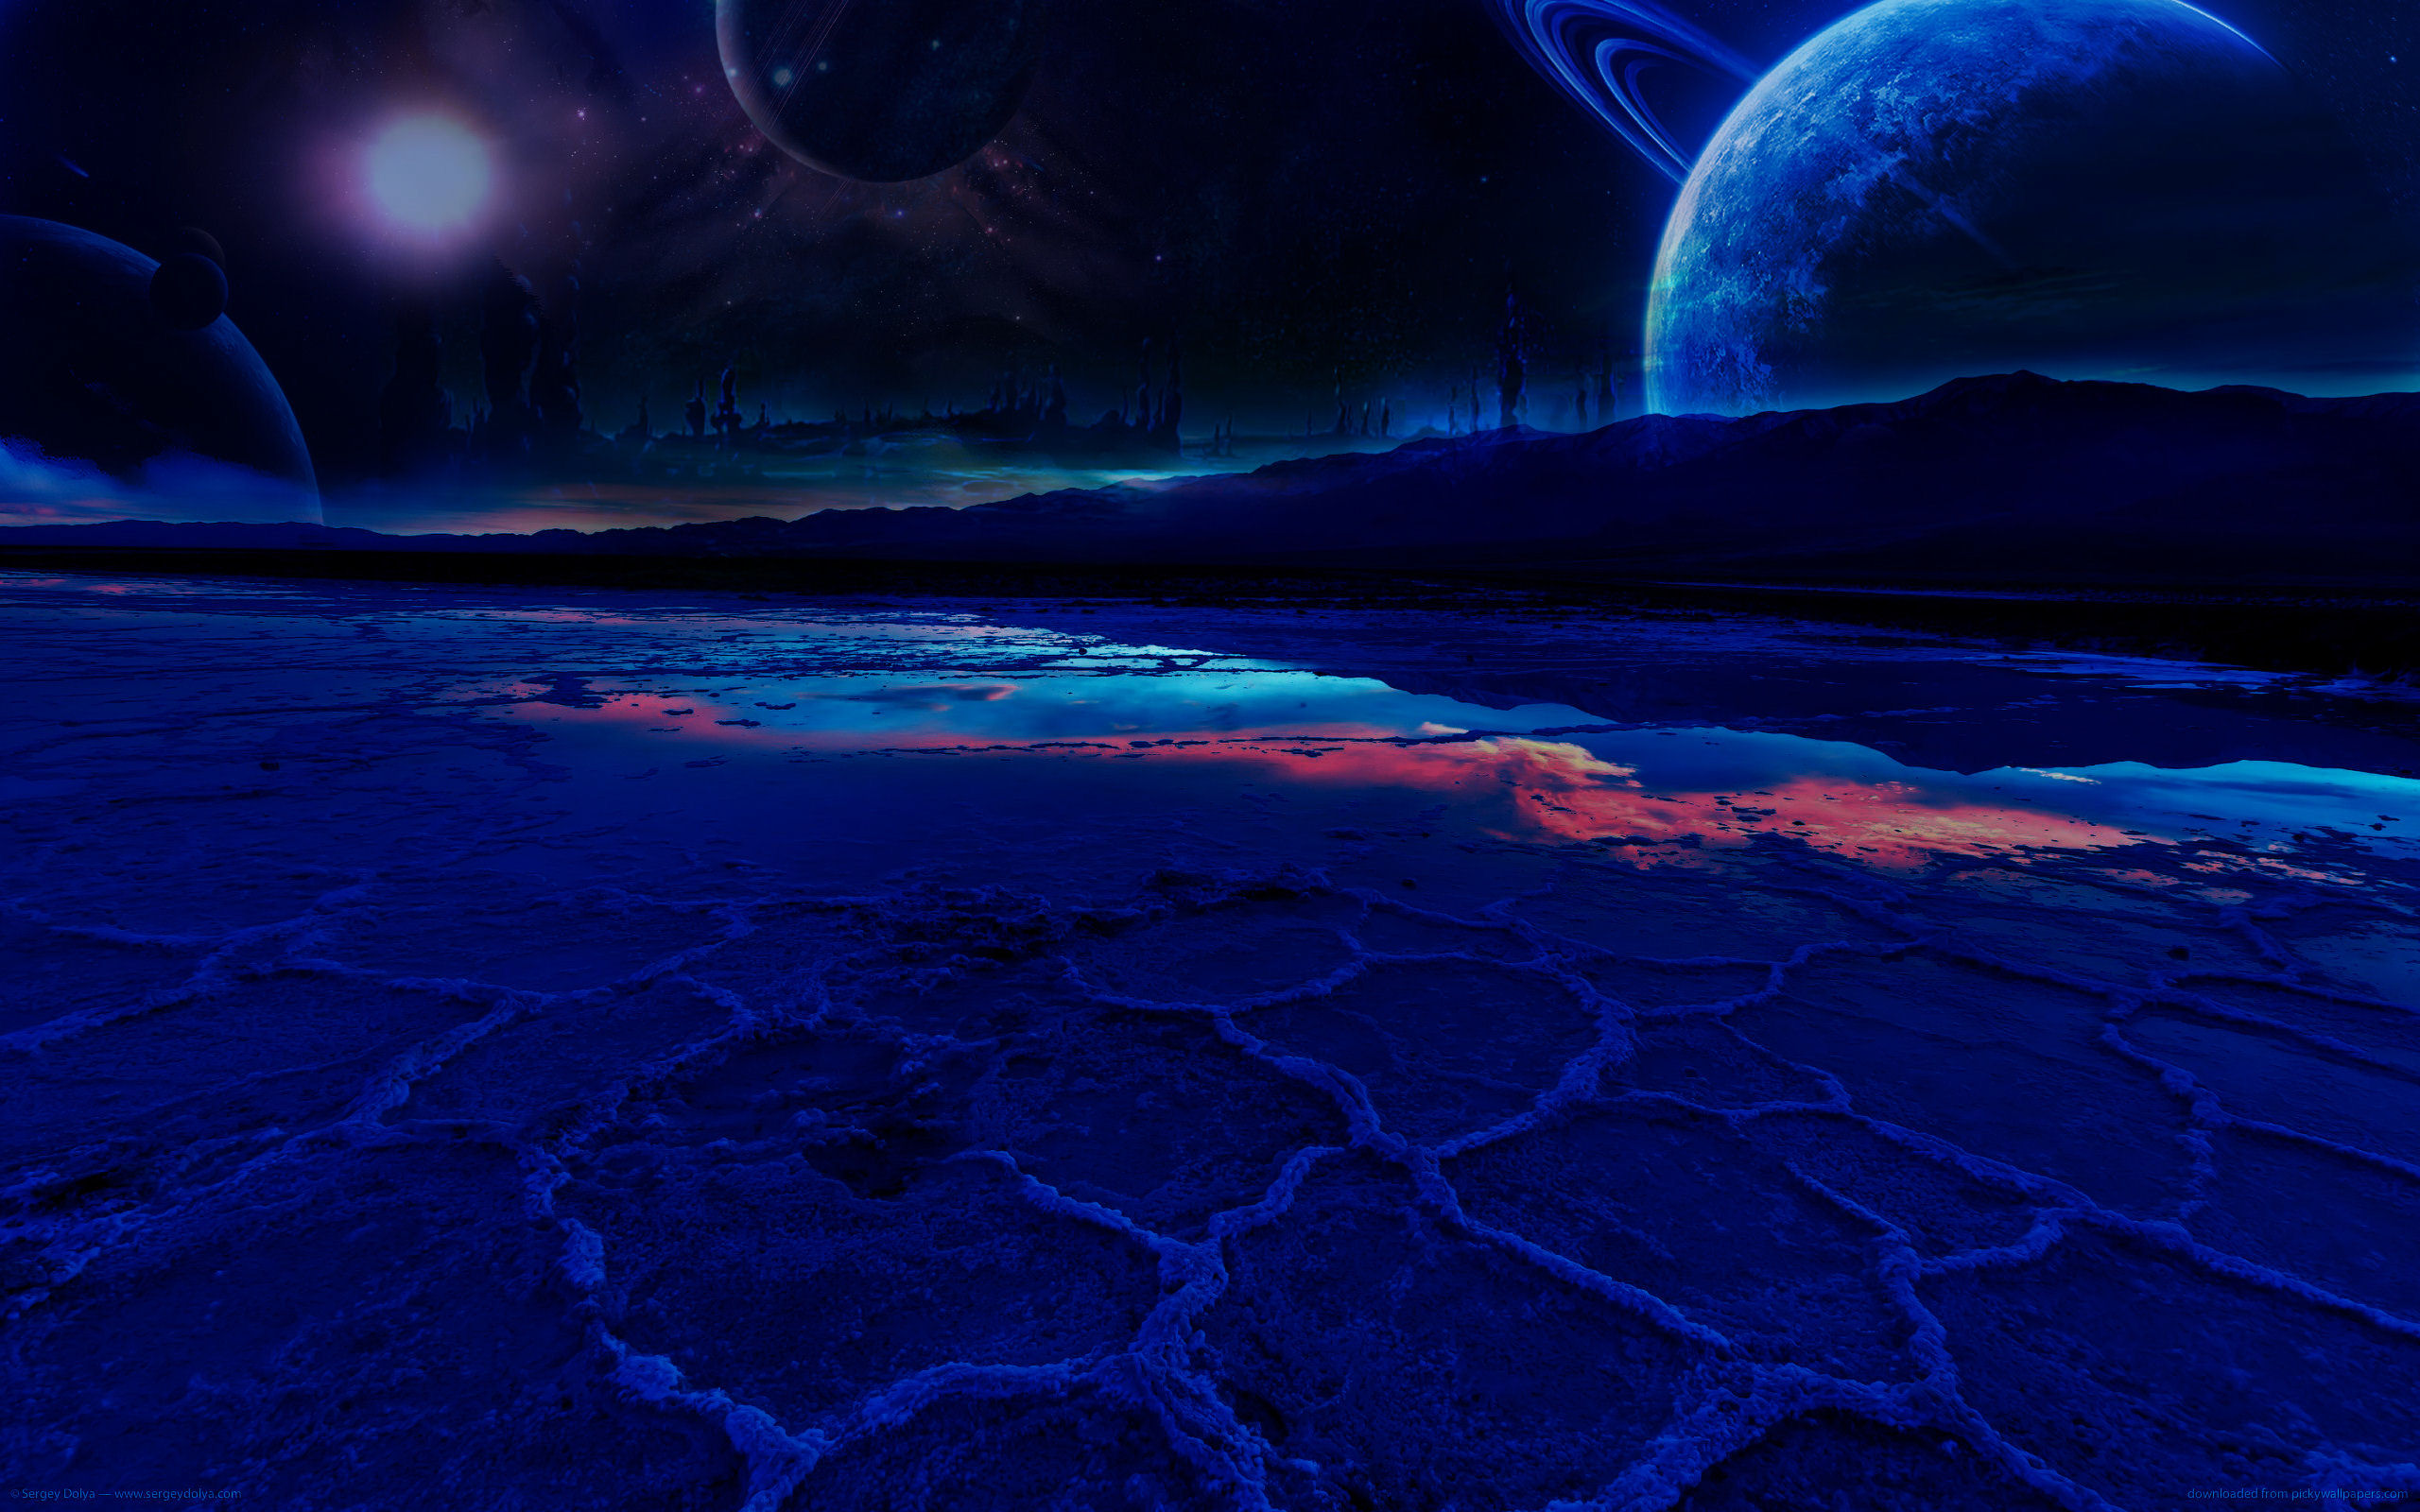 Space fantasy computer wallpapers desktop backgrounds - Space wallpaper 2160x1920 ...